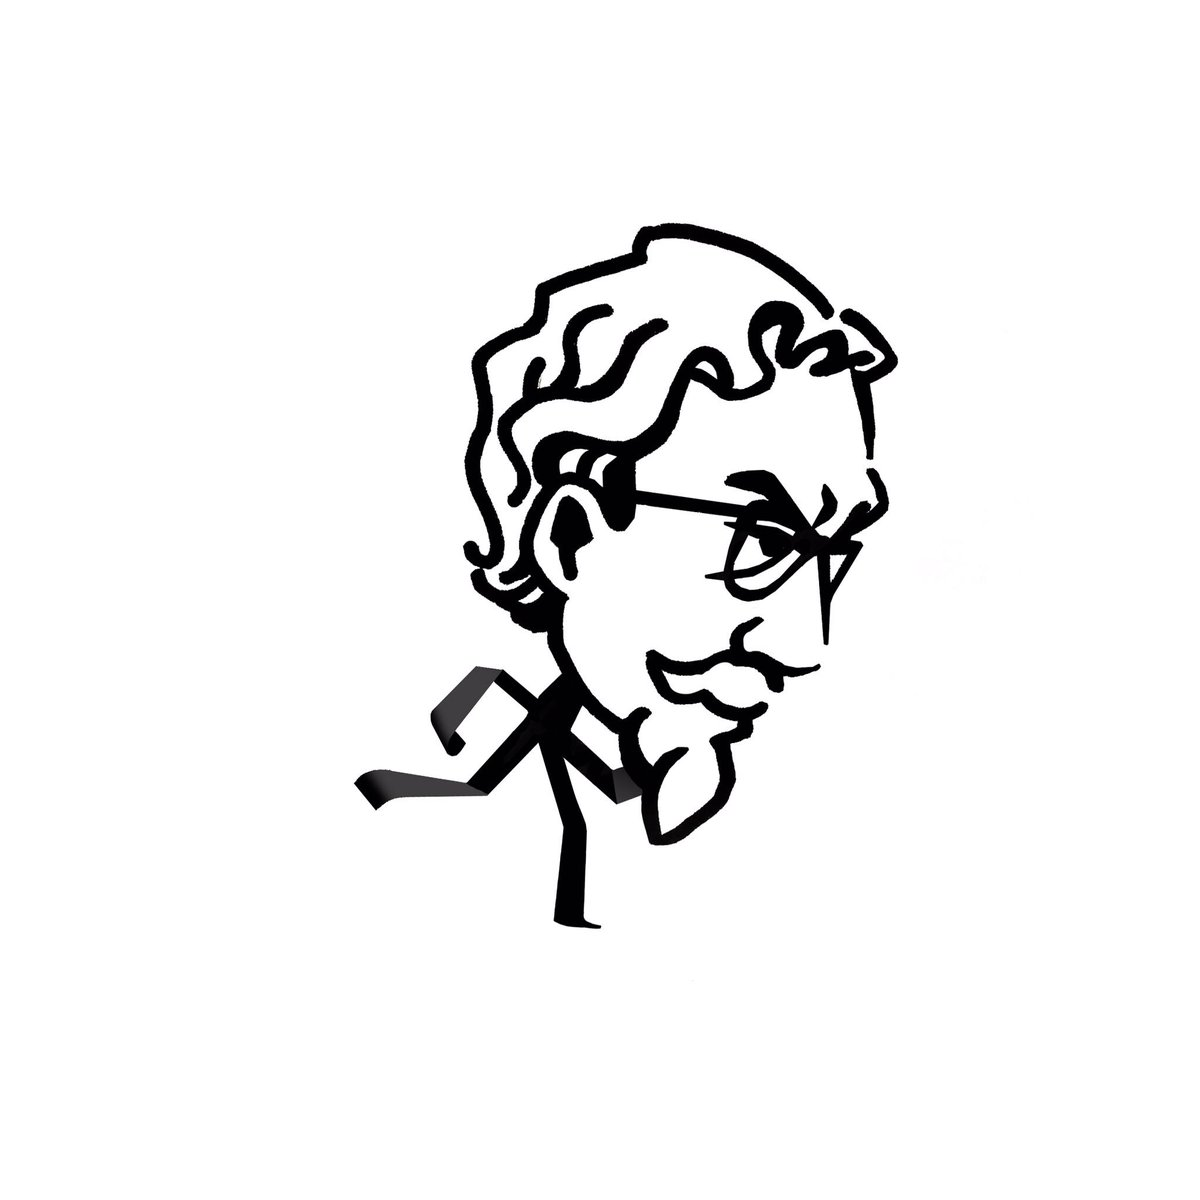 """Cirrus Stone on Twitter: """"In the old logo for KFC, as a kid I thought the  Colonel's Kentucky bow tie was his tiny stick-man body. #KFC #stickman  #drawing… https://t.co/ogK7HImxVh"""""""